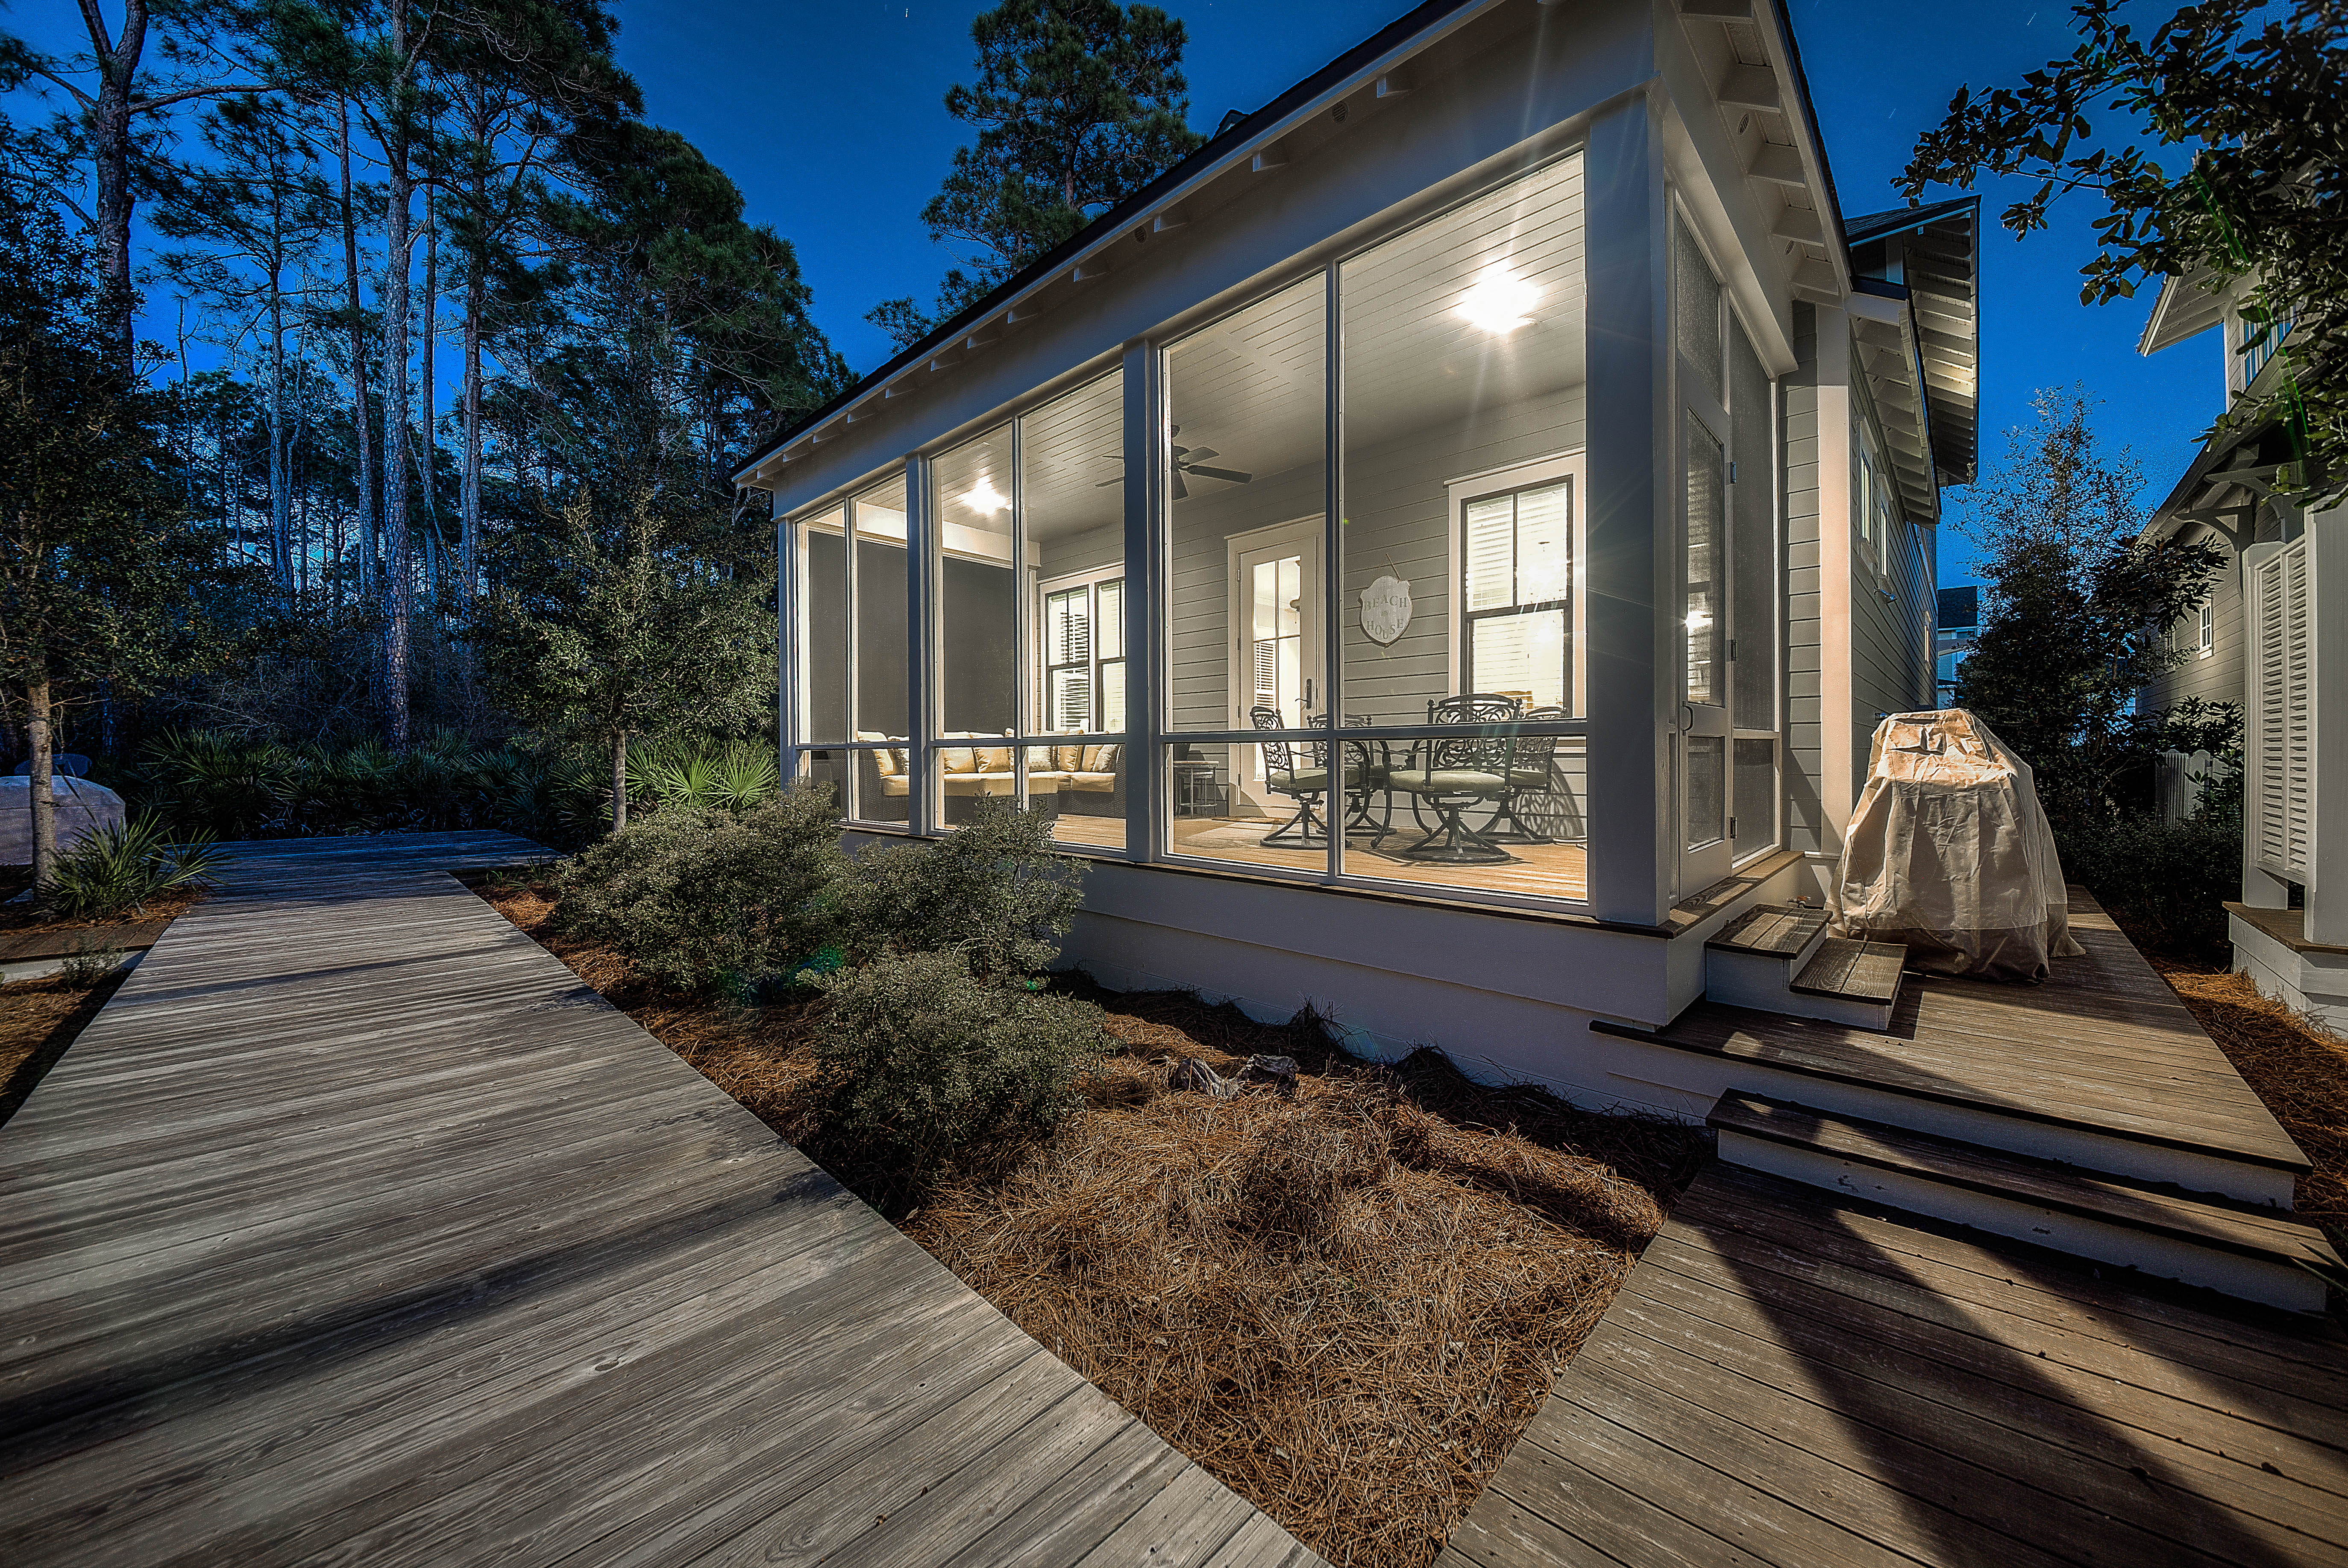 Walking paths surround the home and provide convenient access to the scenic lake and pool/beach access